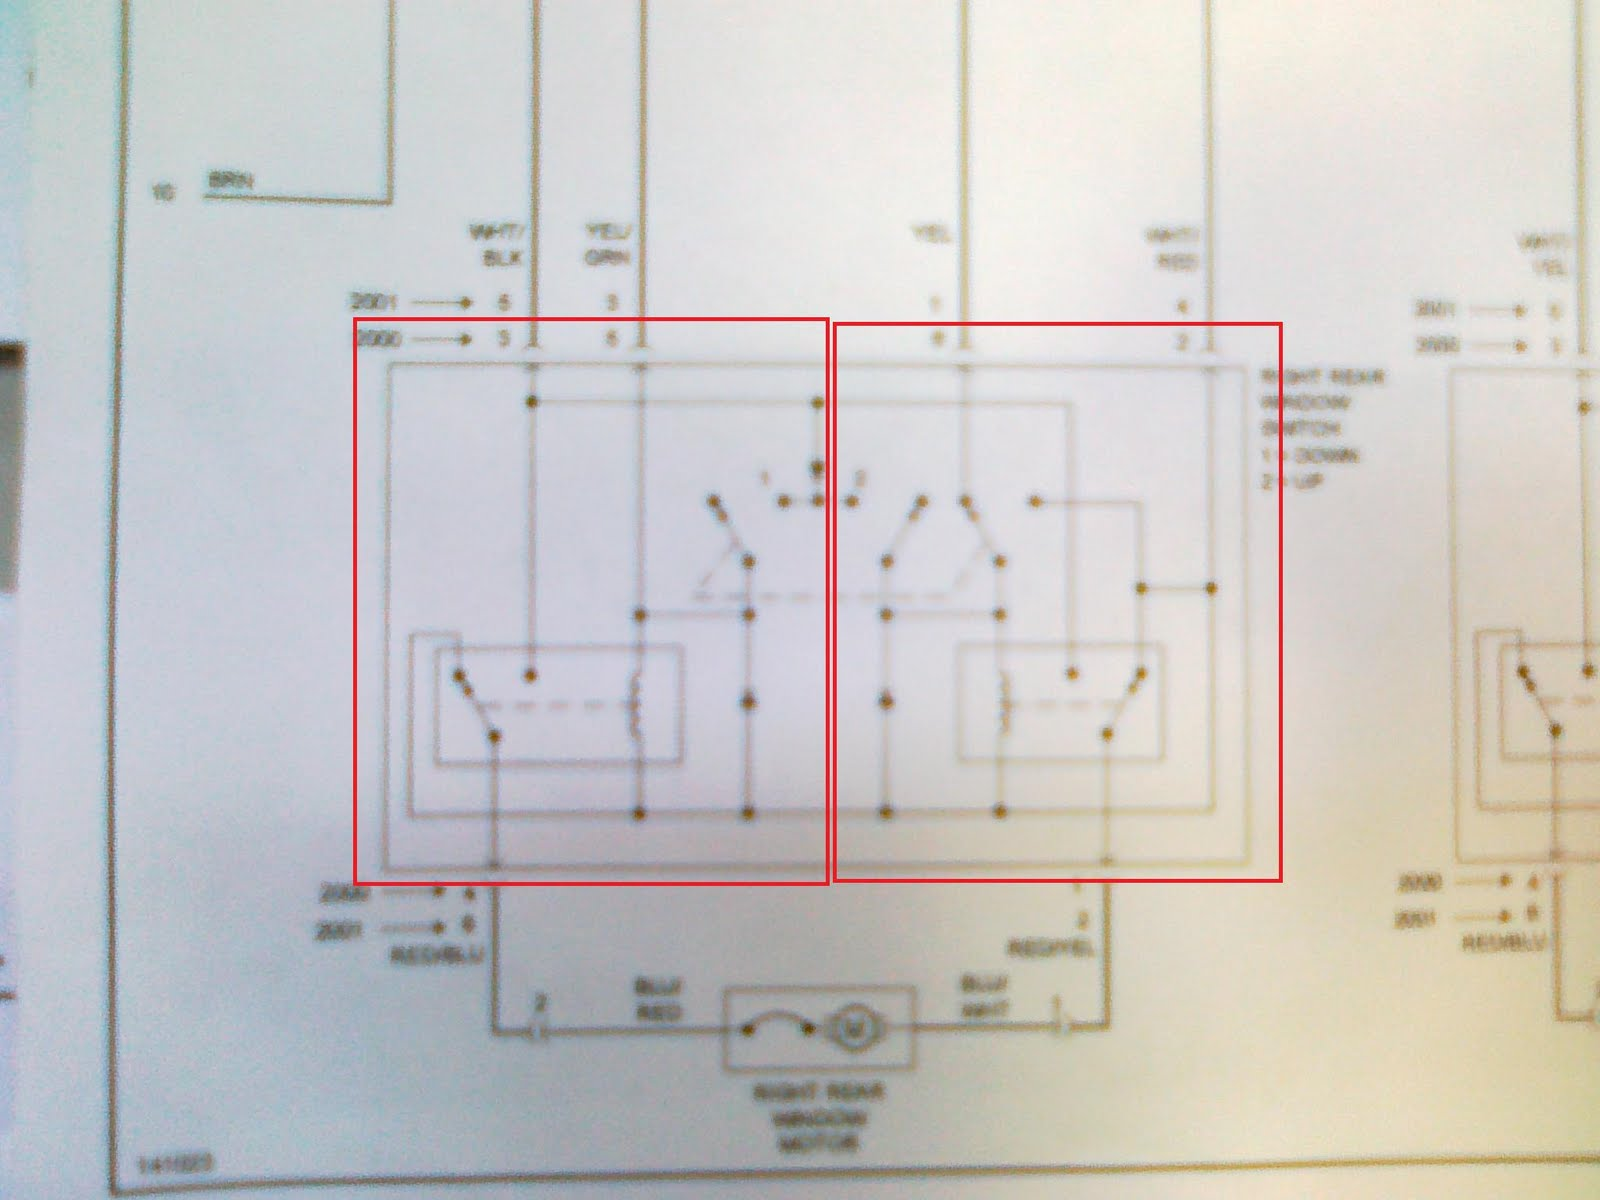 Takeuchi wiring schematic free download fender noiless strat wiring enchanting 4age wiring diagram mold everything you need to know 22062011553 4age wiring diagram takeuchi wiring schematic free download cheapraybanclubmaster Gallery